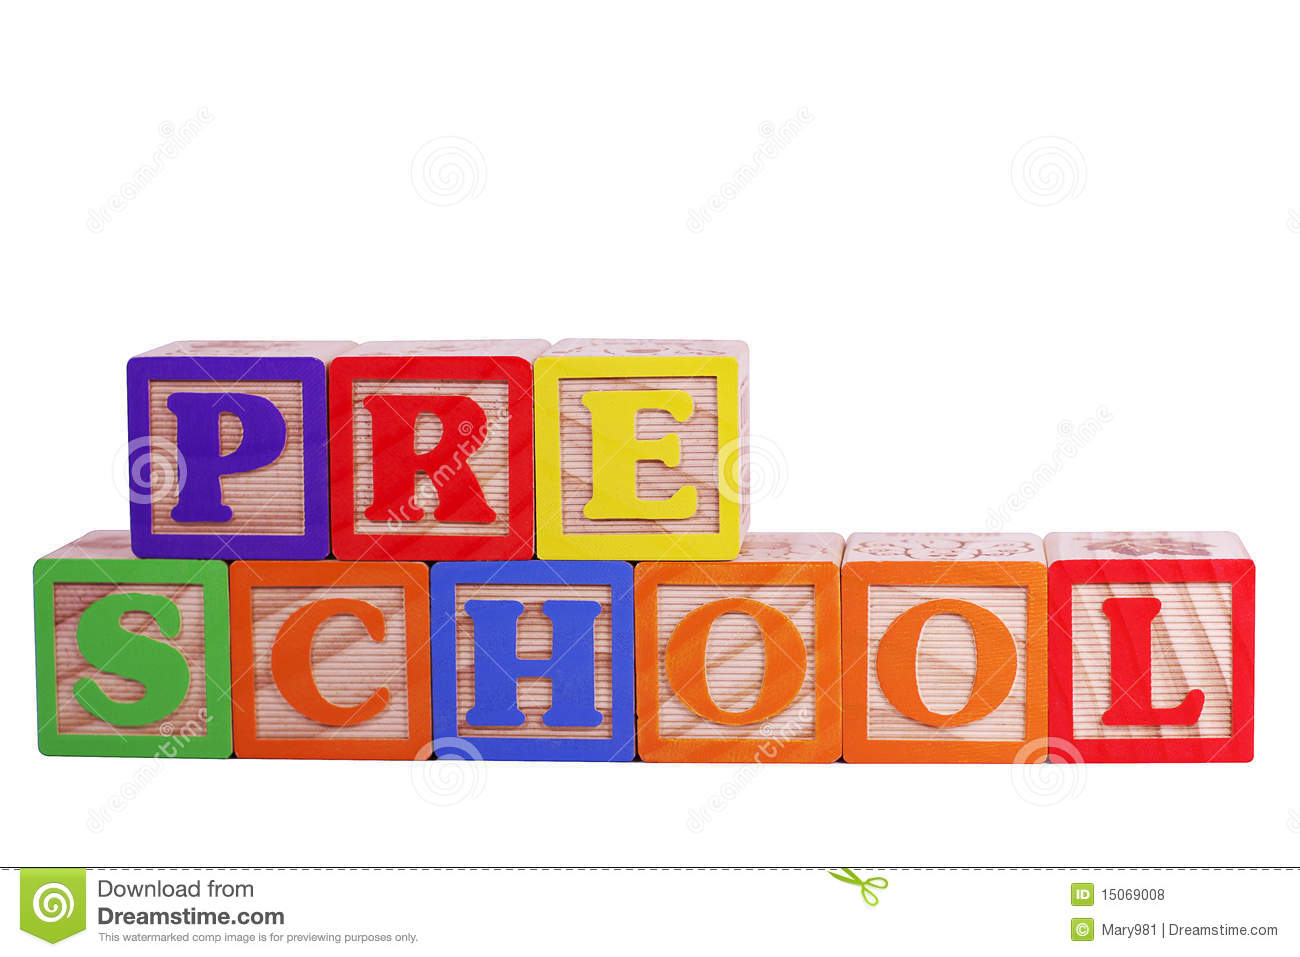 Worksheet Pictures Of Preschool preschool stock photos images pictures 143483 royalty free photos